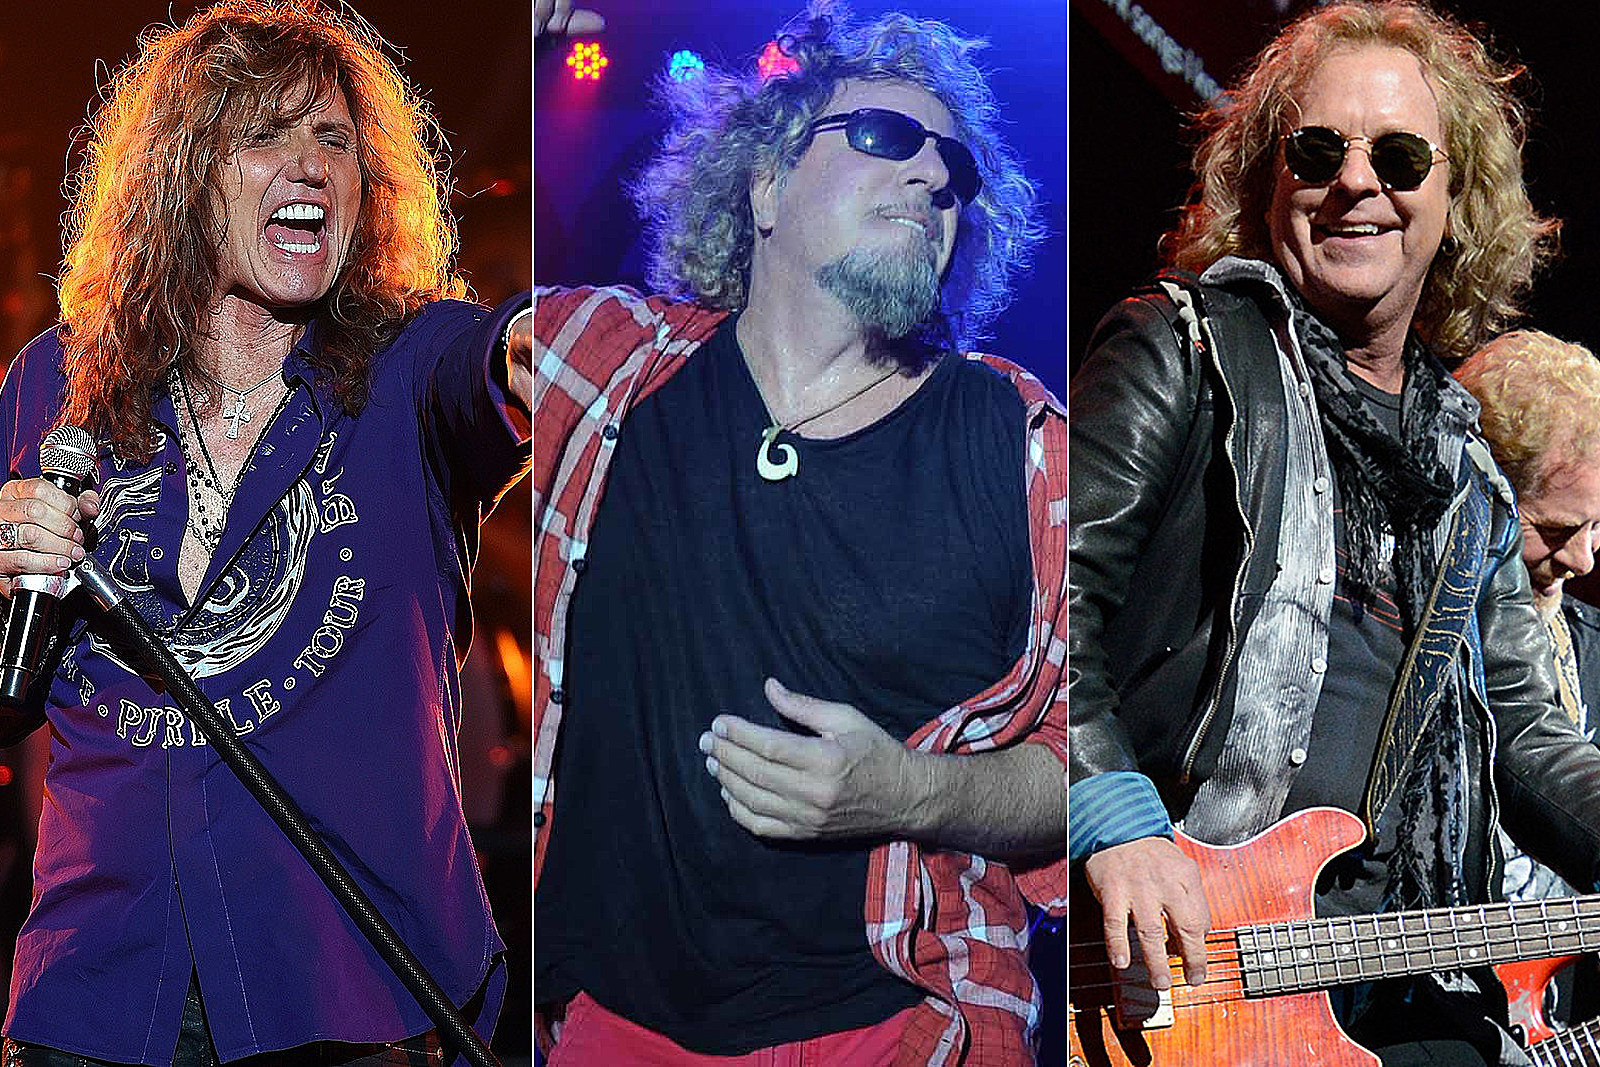 Sammy Hagar Teases Summer Tour With Whitesnake, Night Ranger